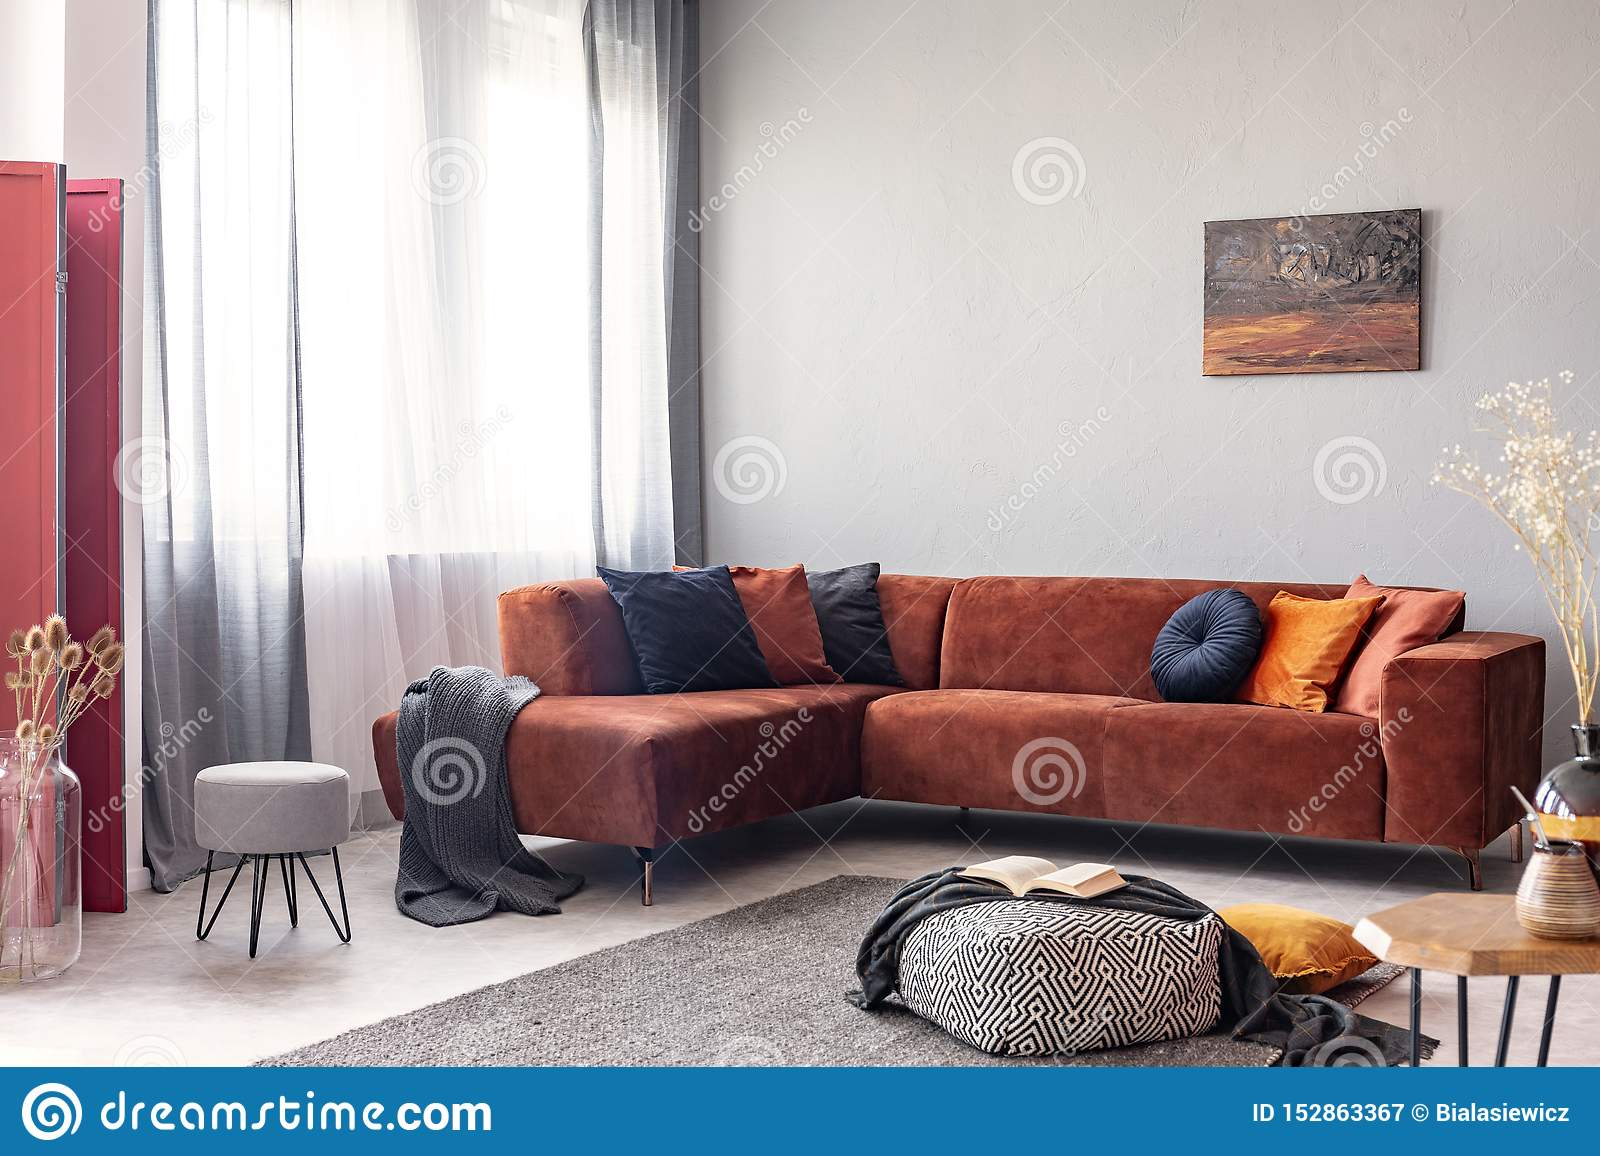 Colorful Abstract Painting On White Wall Of Stunning Living Room Interior Stock Image Image Of Abstract Interior 152863367